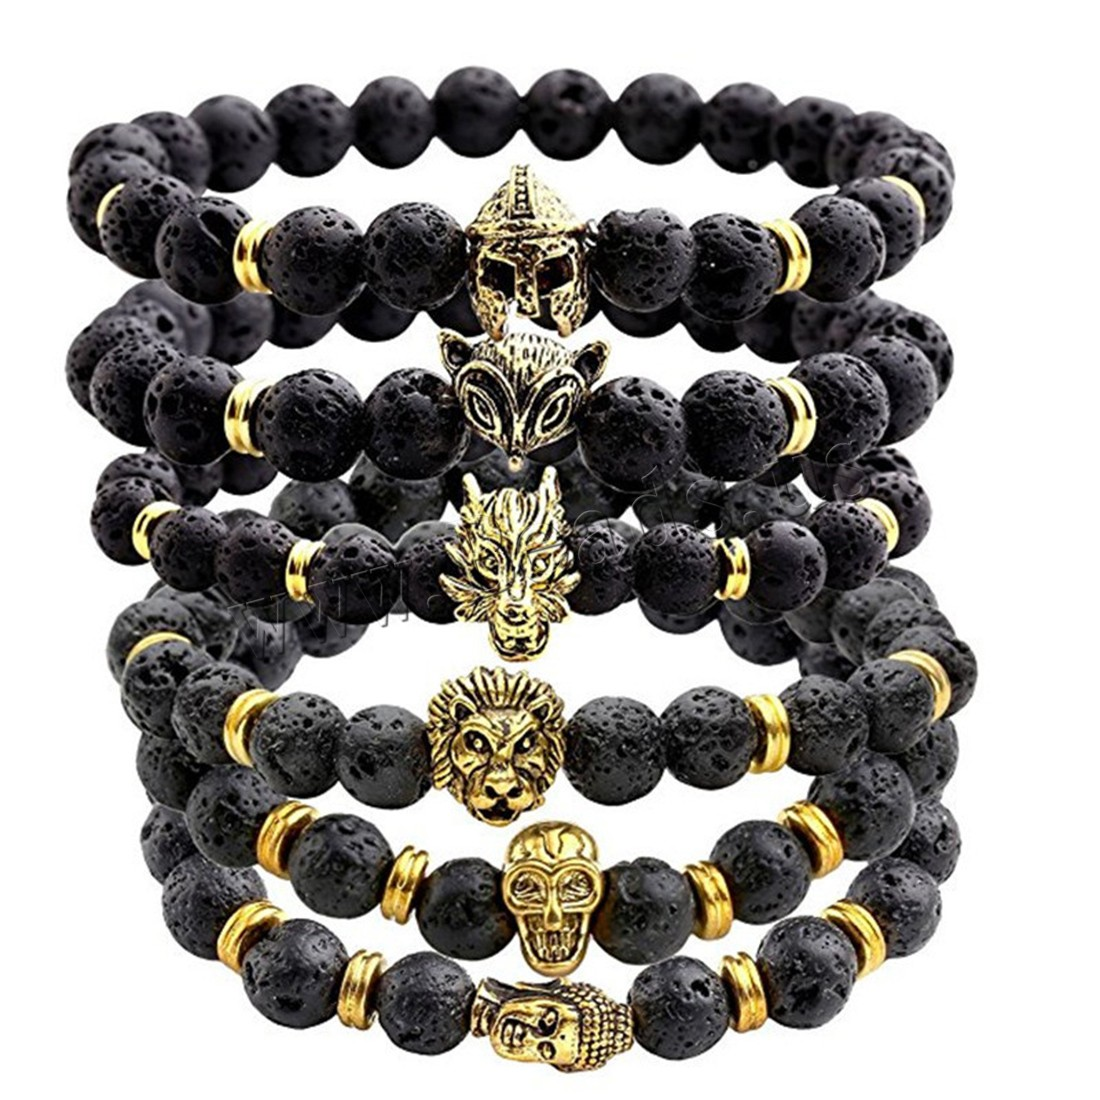 Buy Zinc Alloy Bracelet Lava gold color plated Unisex & different styles choice & blacken 8mm Sold Per Approx 7.5 Inch Strand